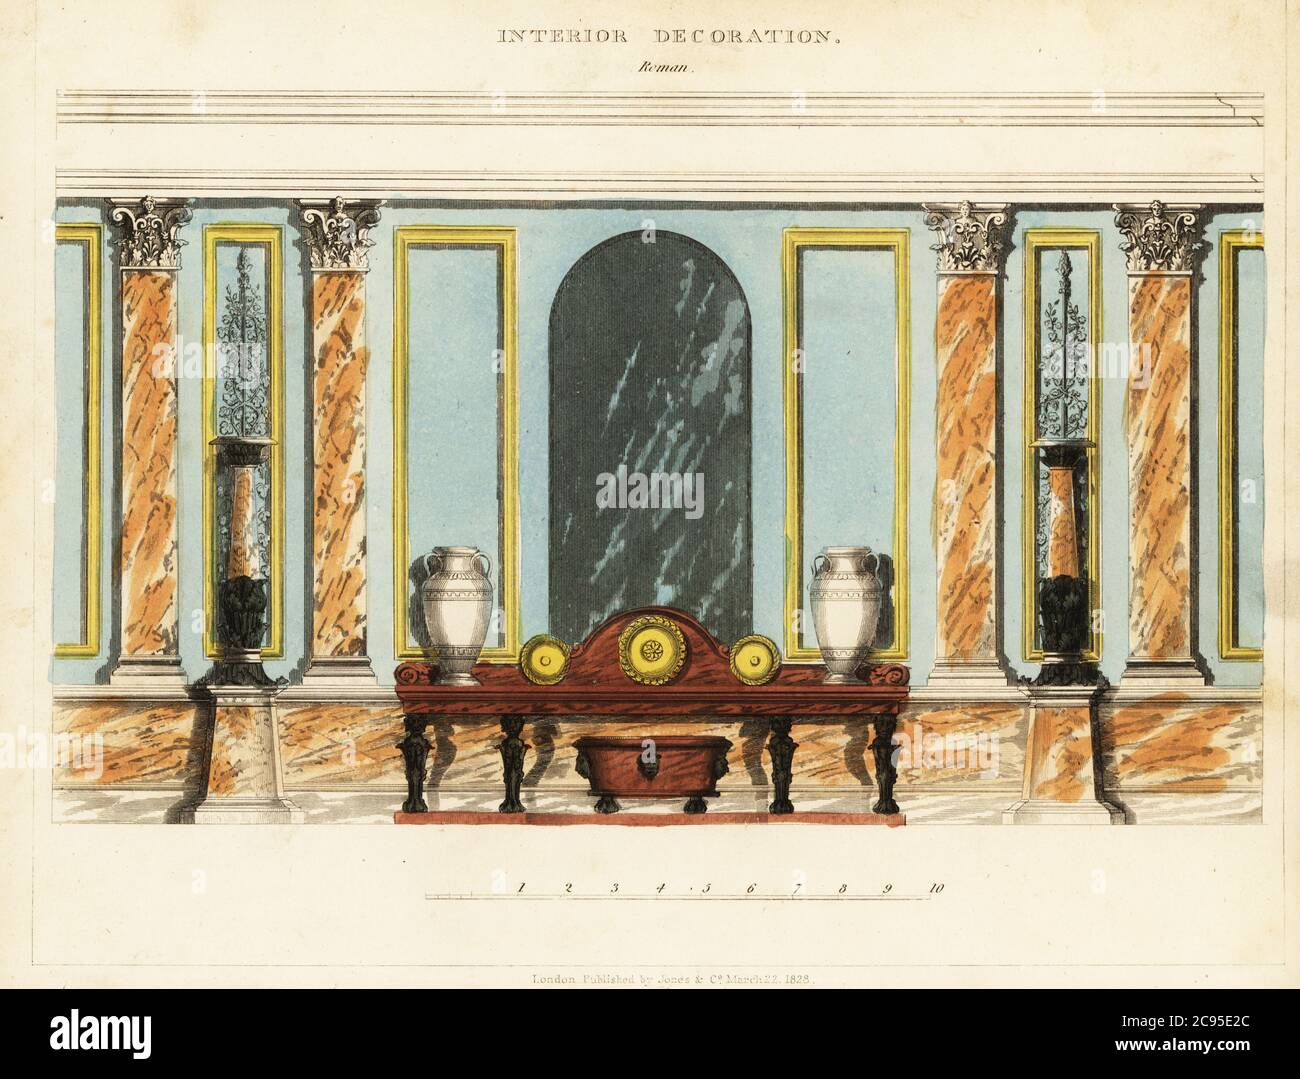 Interior Decoration Roman High Interior Wall Decorated With Framed Panels And Marble Ionic Columns And Capitals Low Wooden Table To Display Vases And Gold Plates Handcoloured Copperplate Engraving From George Smith S The